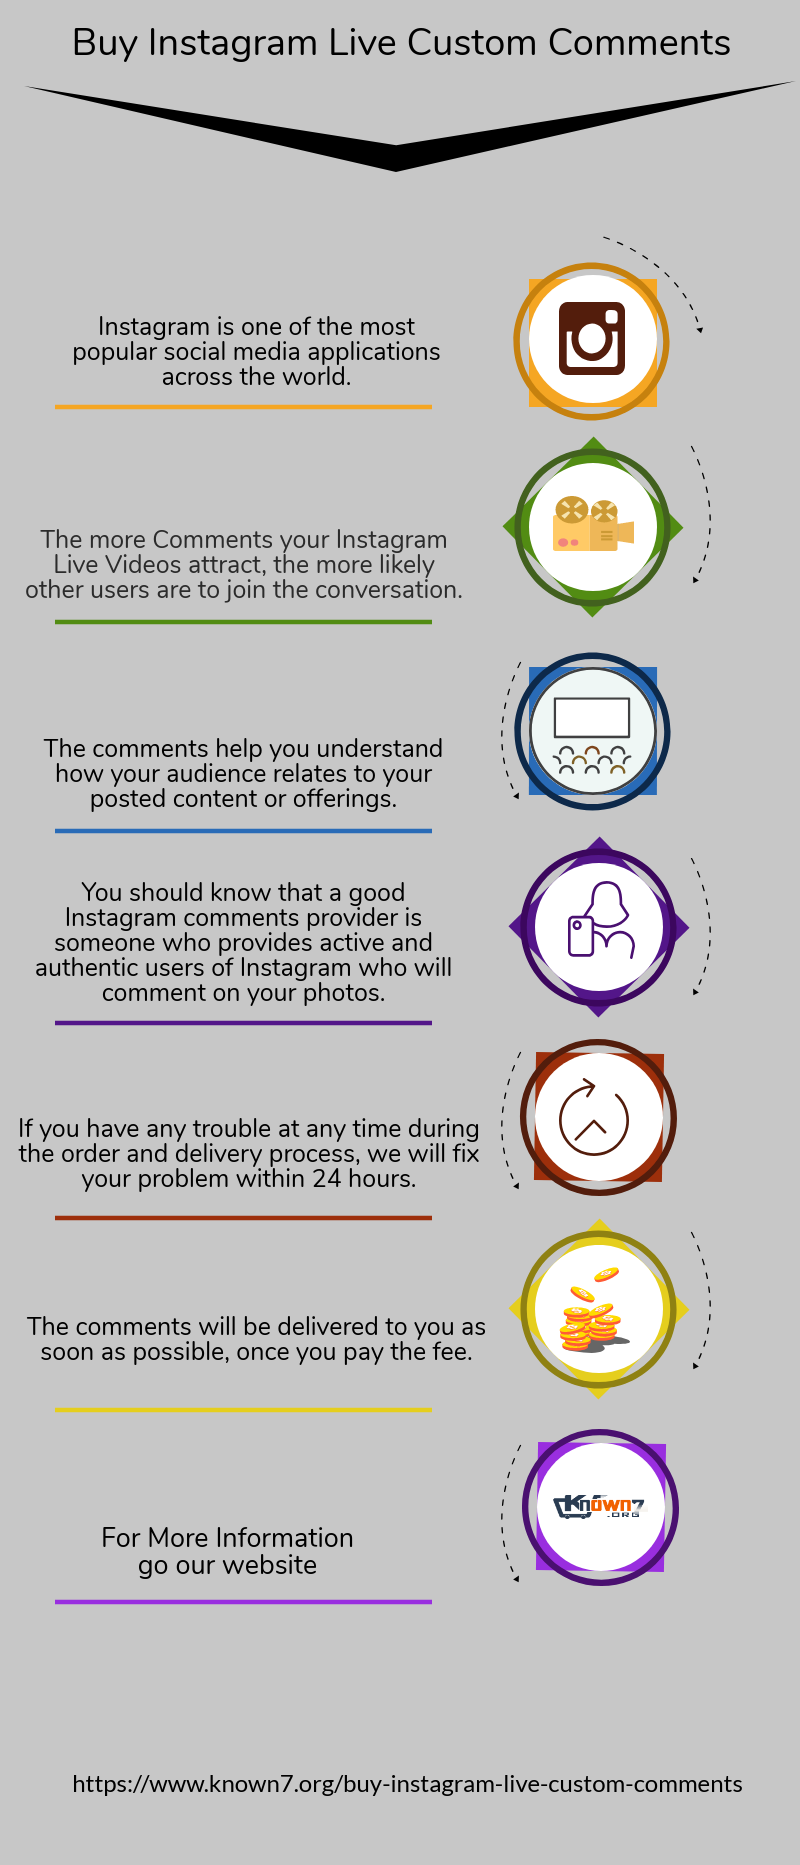 Get Instagram Live Custom Comments With Credit Card Instagram Live Instagram Get Instagram